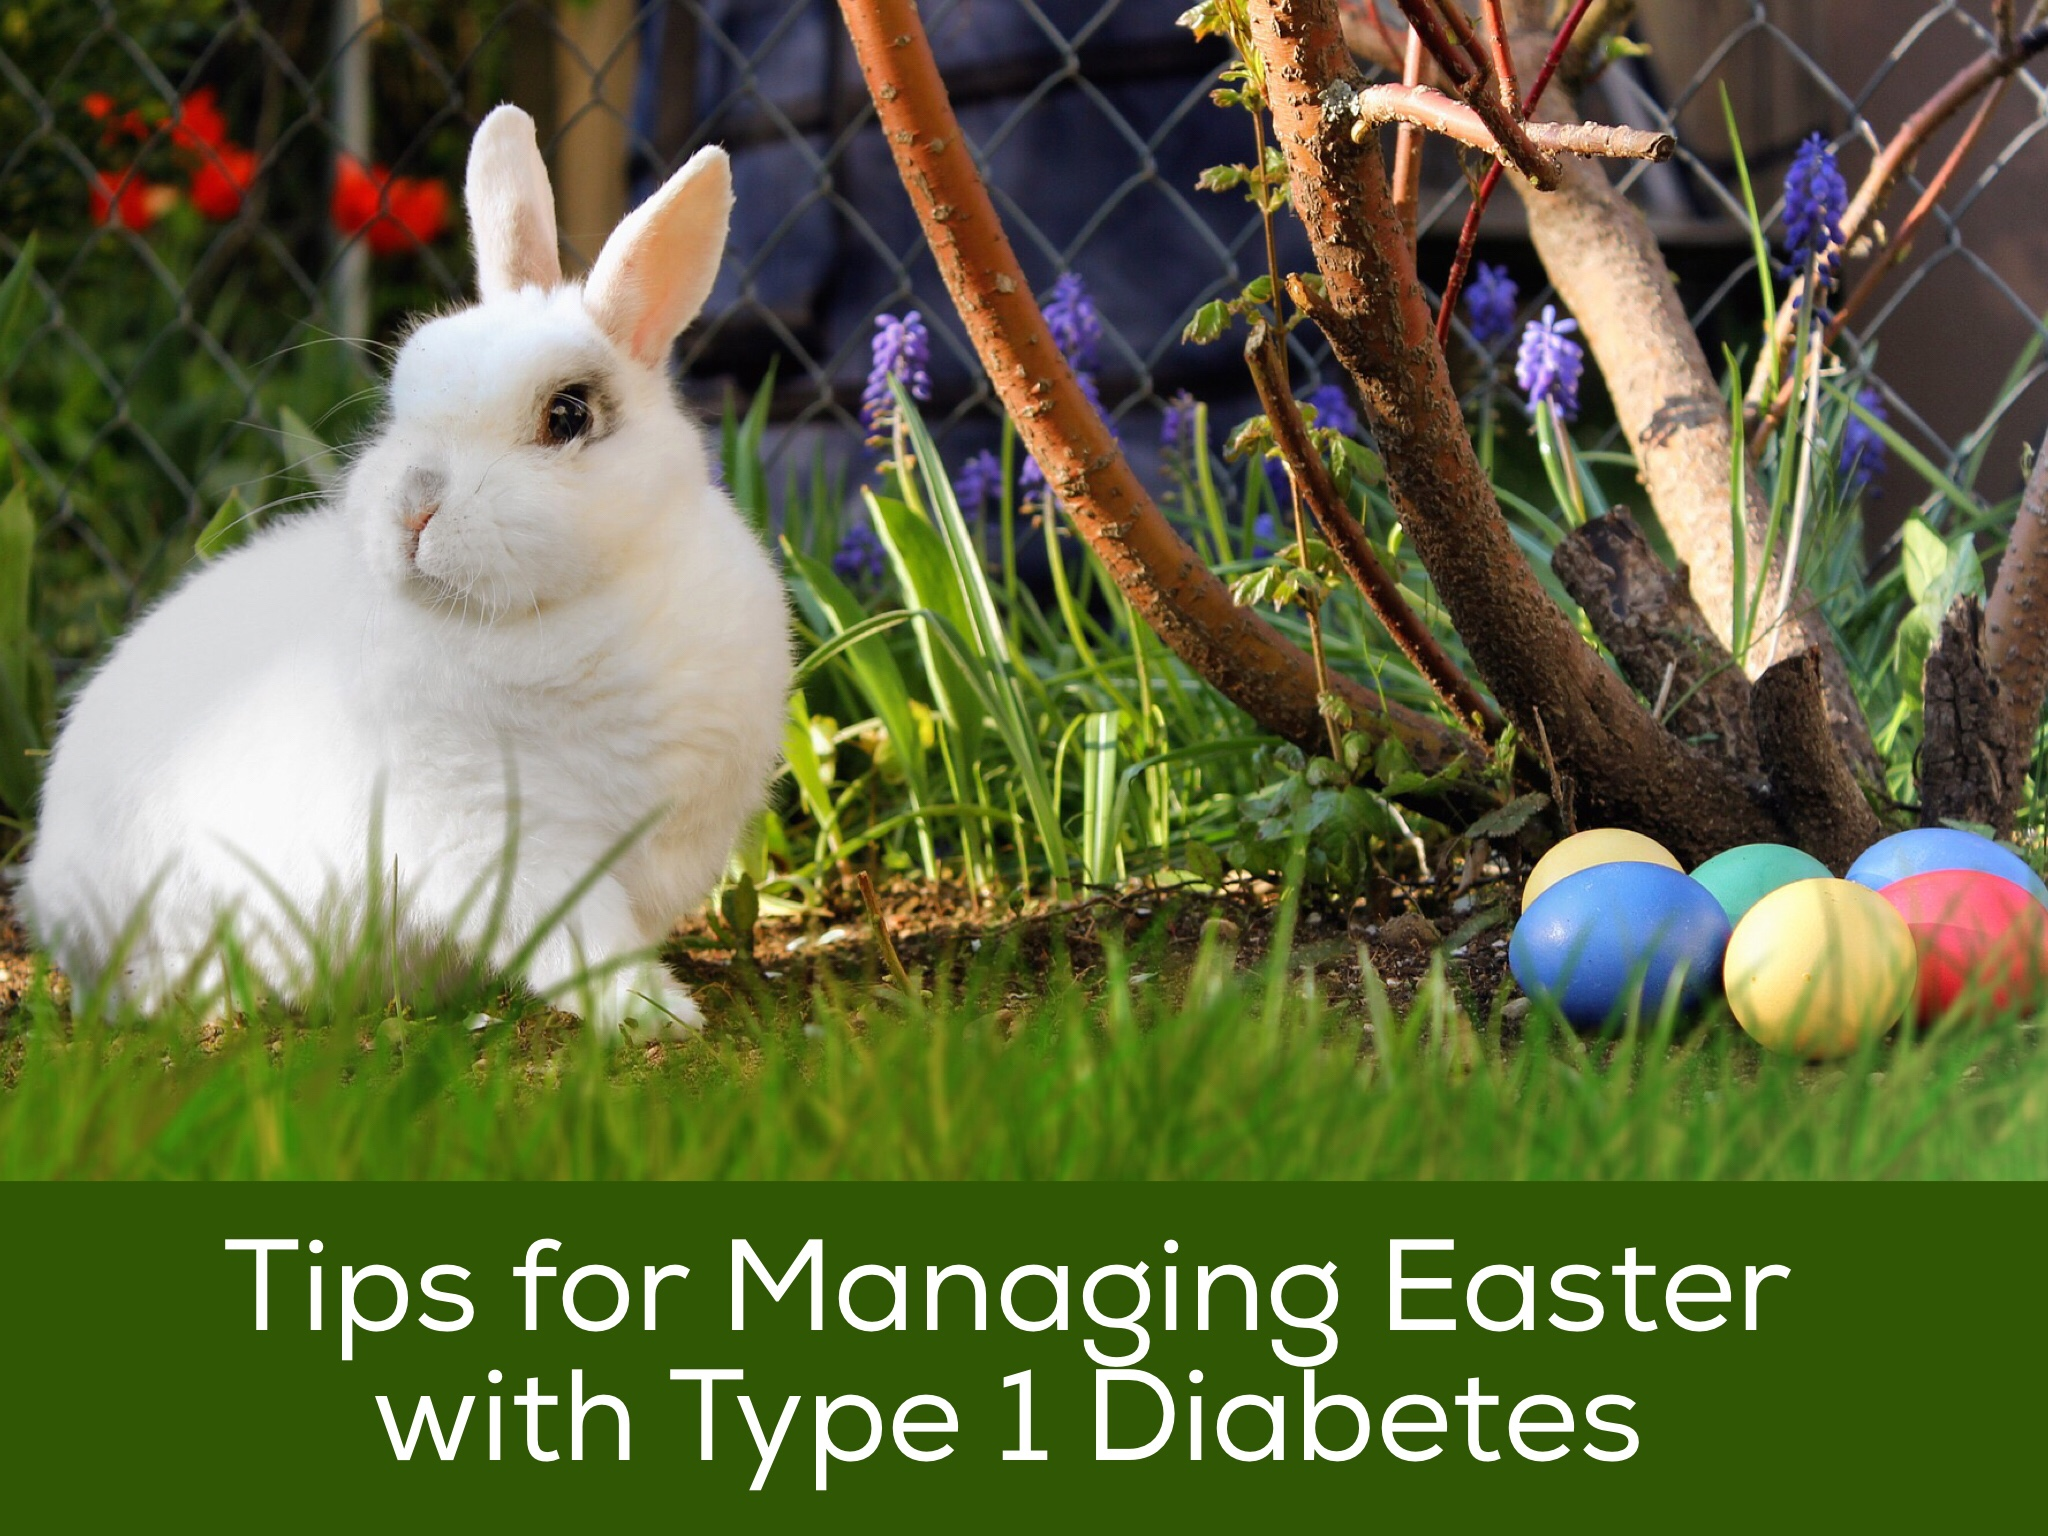 Easter with Diabetes